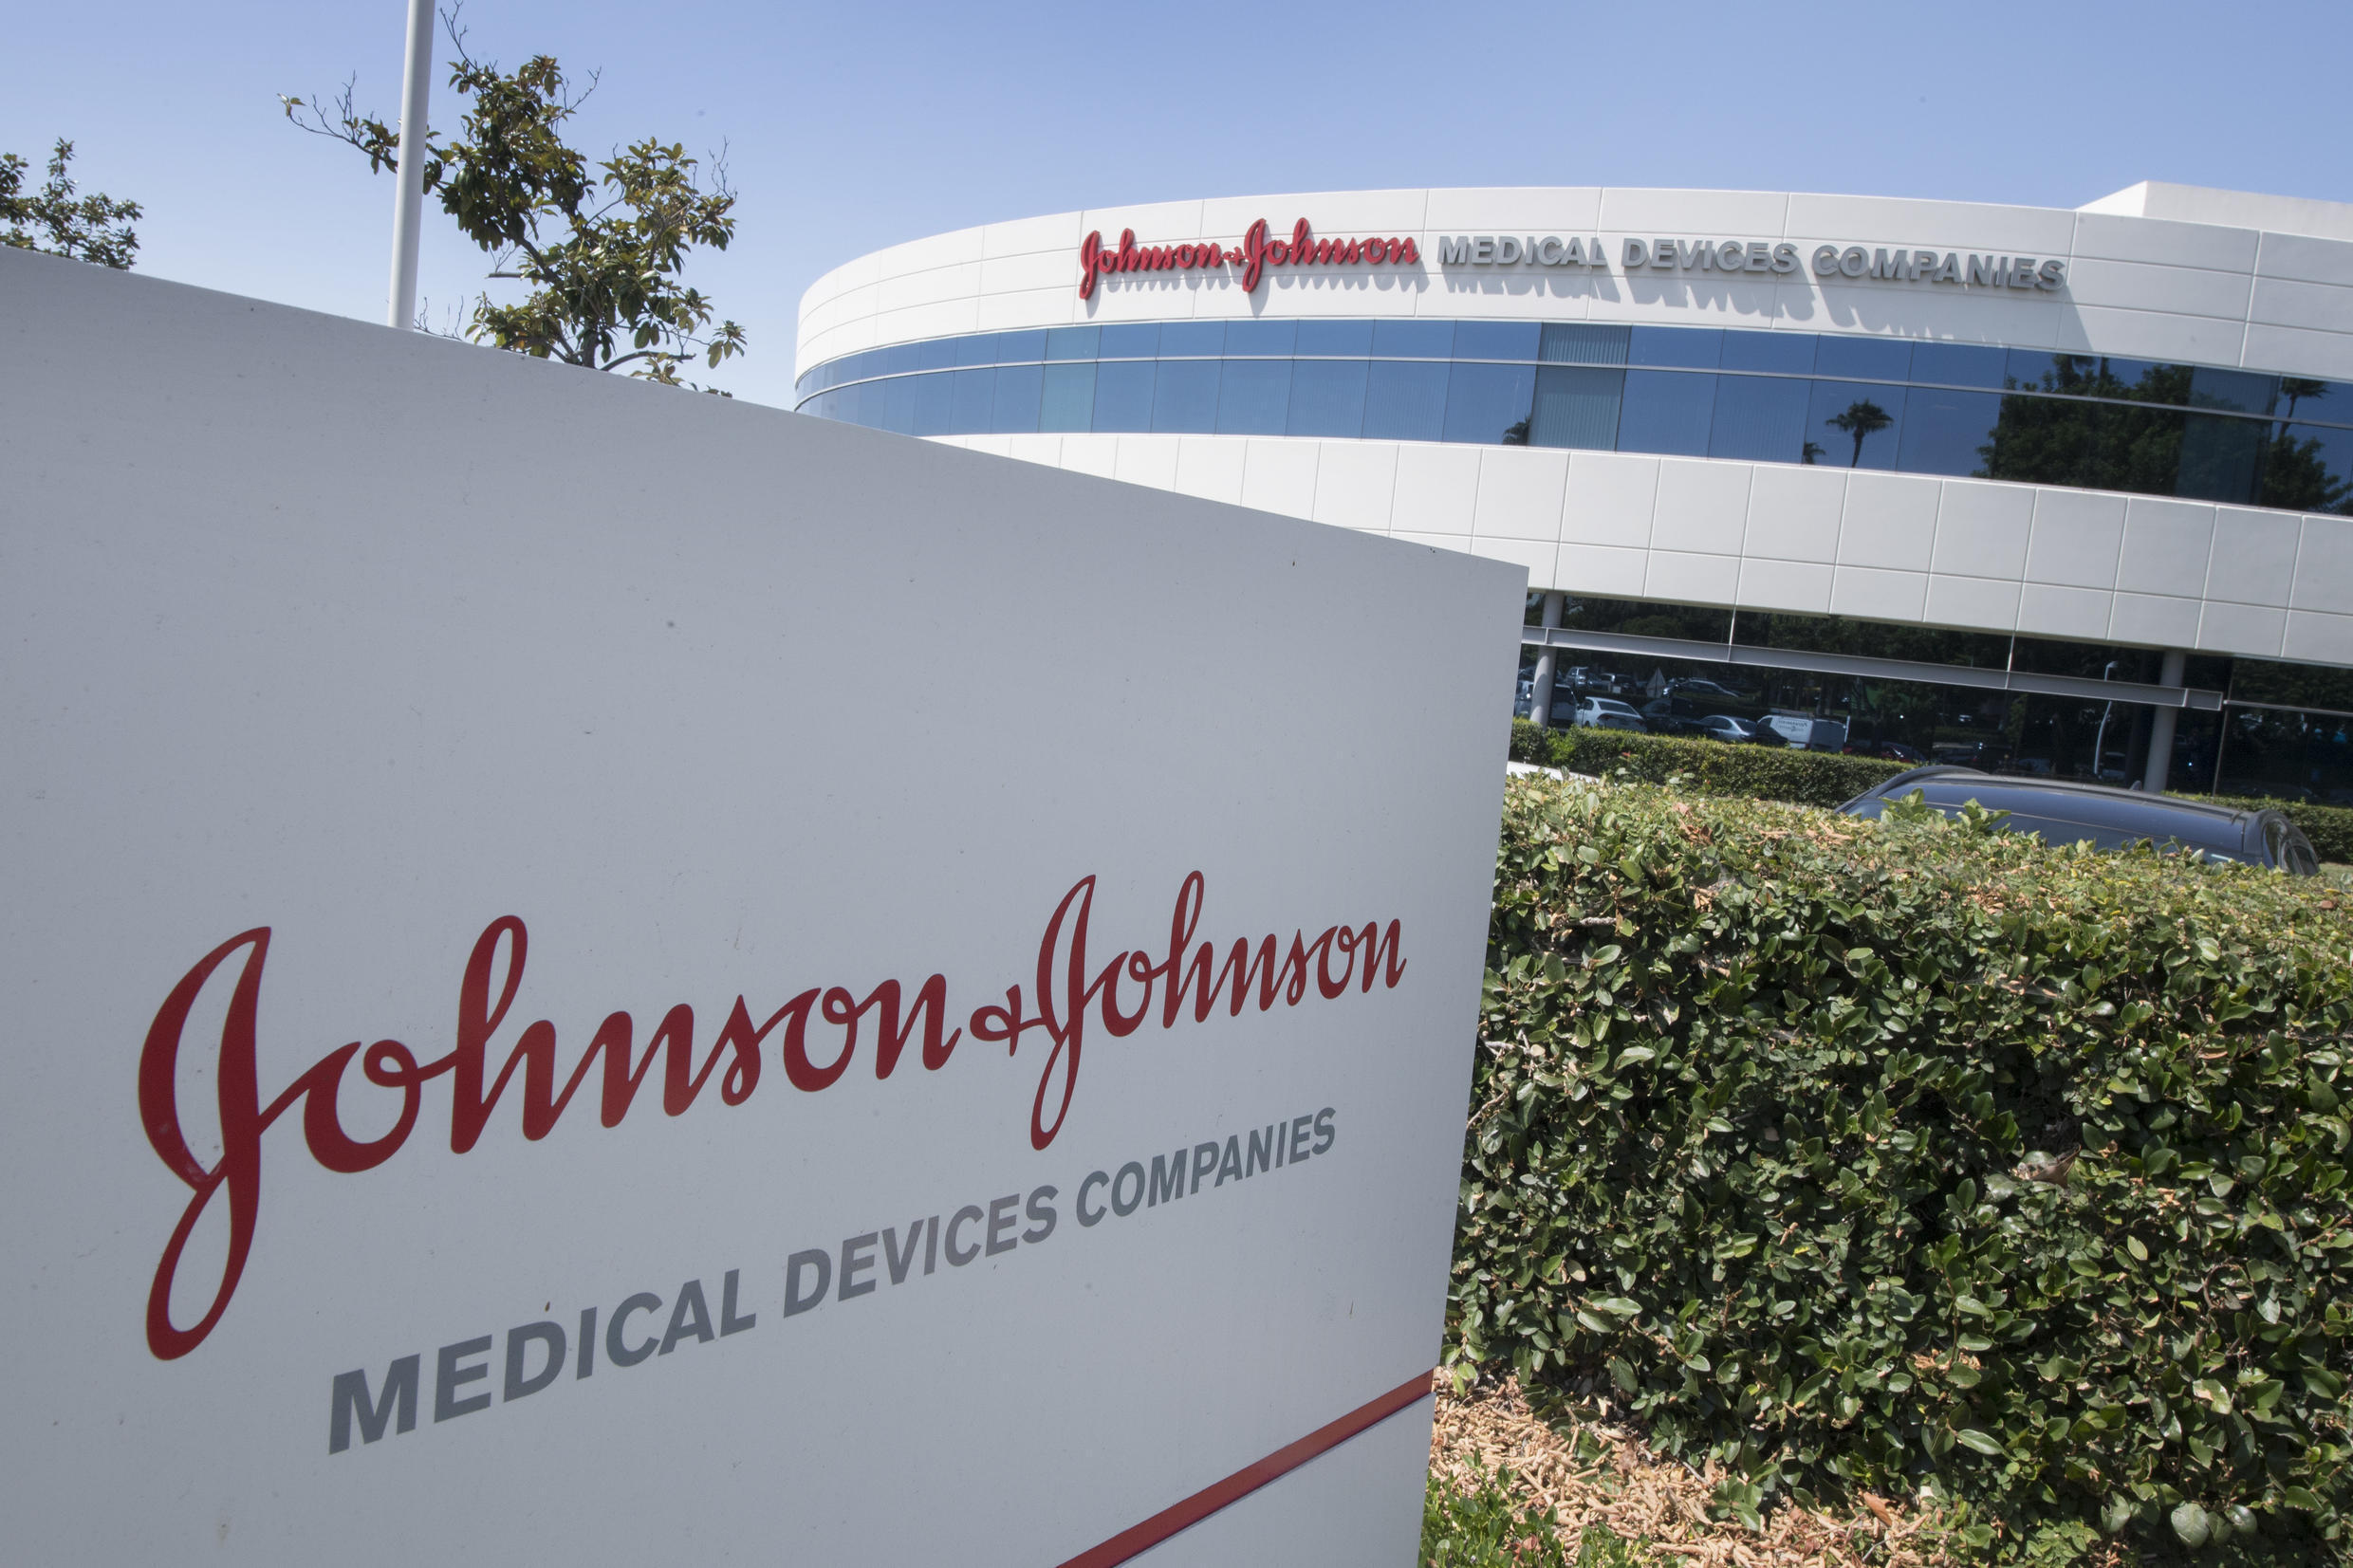 Experts say Johnson &Johnson's Covid-19 shot will be another invaluable tool in bringing the outbreak to a close in the United States, where more than 500,000 people have died